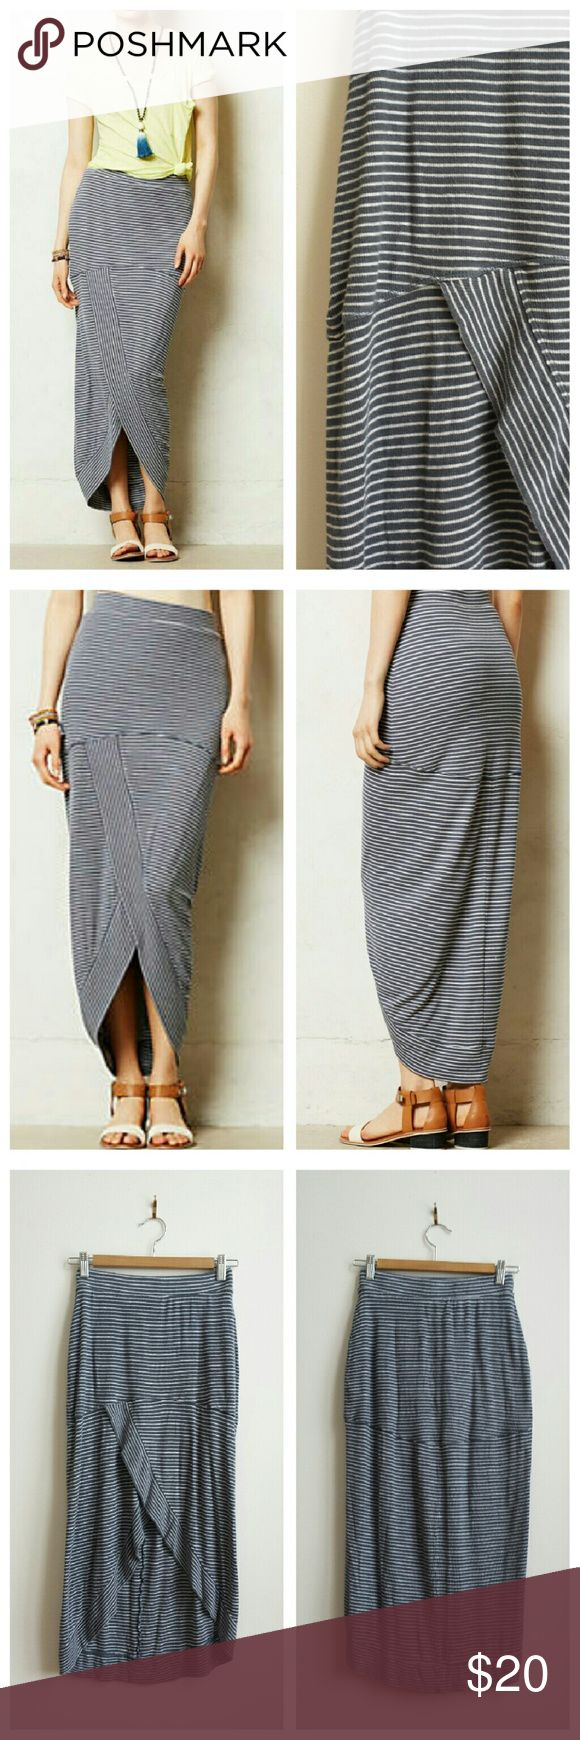 Anthropologie Bordeaux Pembroke Maxi Skirt XS Comfy and adorable, with a high-low hemline that gives a flash of leg. Details: Rooted in high-fashion design and committed to craftsmanship, Bordeaux's fine jersey creations are basics steeped in luxury. Case in point: this wonderfully soft maxi, complete with ribbed detailing and a high-low hem. Pull-on styling Rayon, spandex Hand wash. Size XS (lots of stretch; waist 12.6?, length 33? at longest). Purchased used from eBay but never wore -- no…